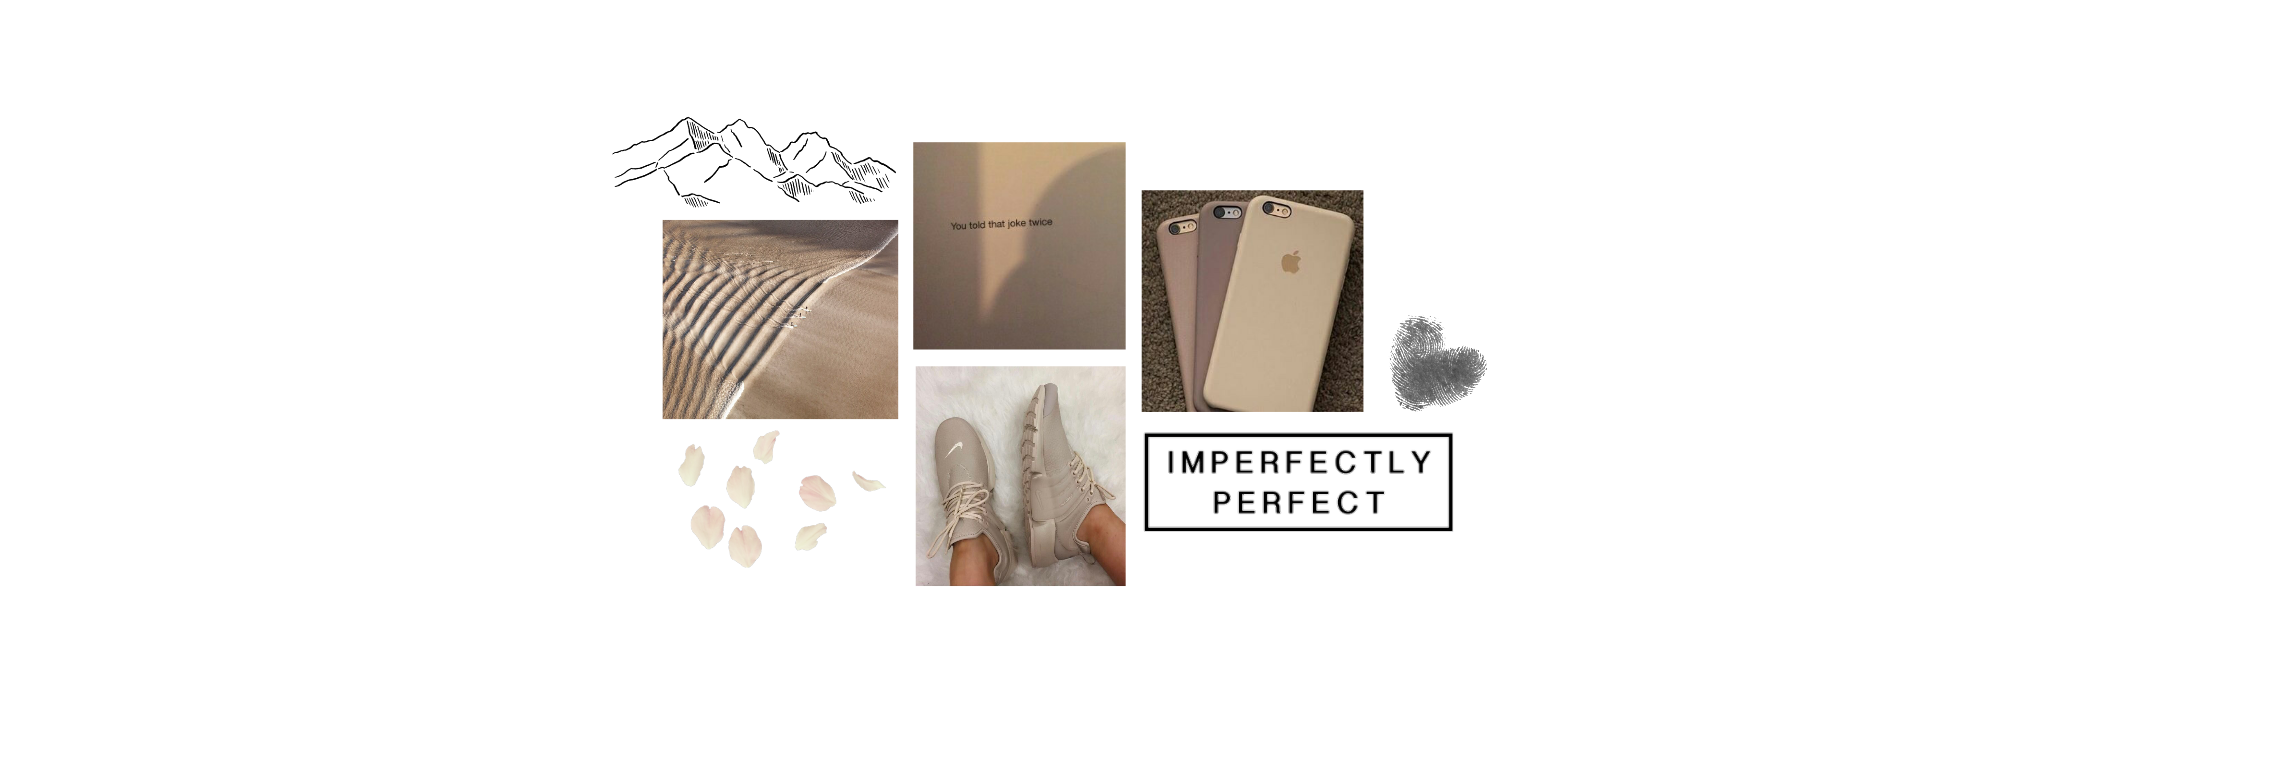 Beige Aesthetic Header Image By Rebecca